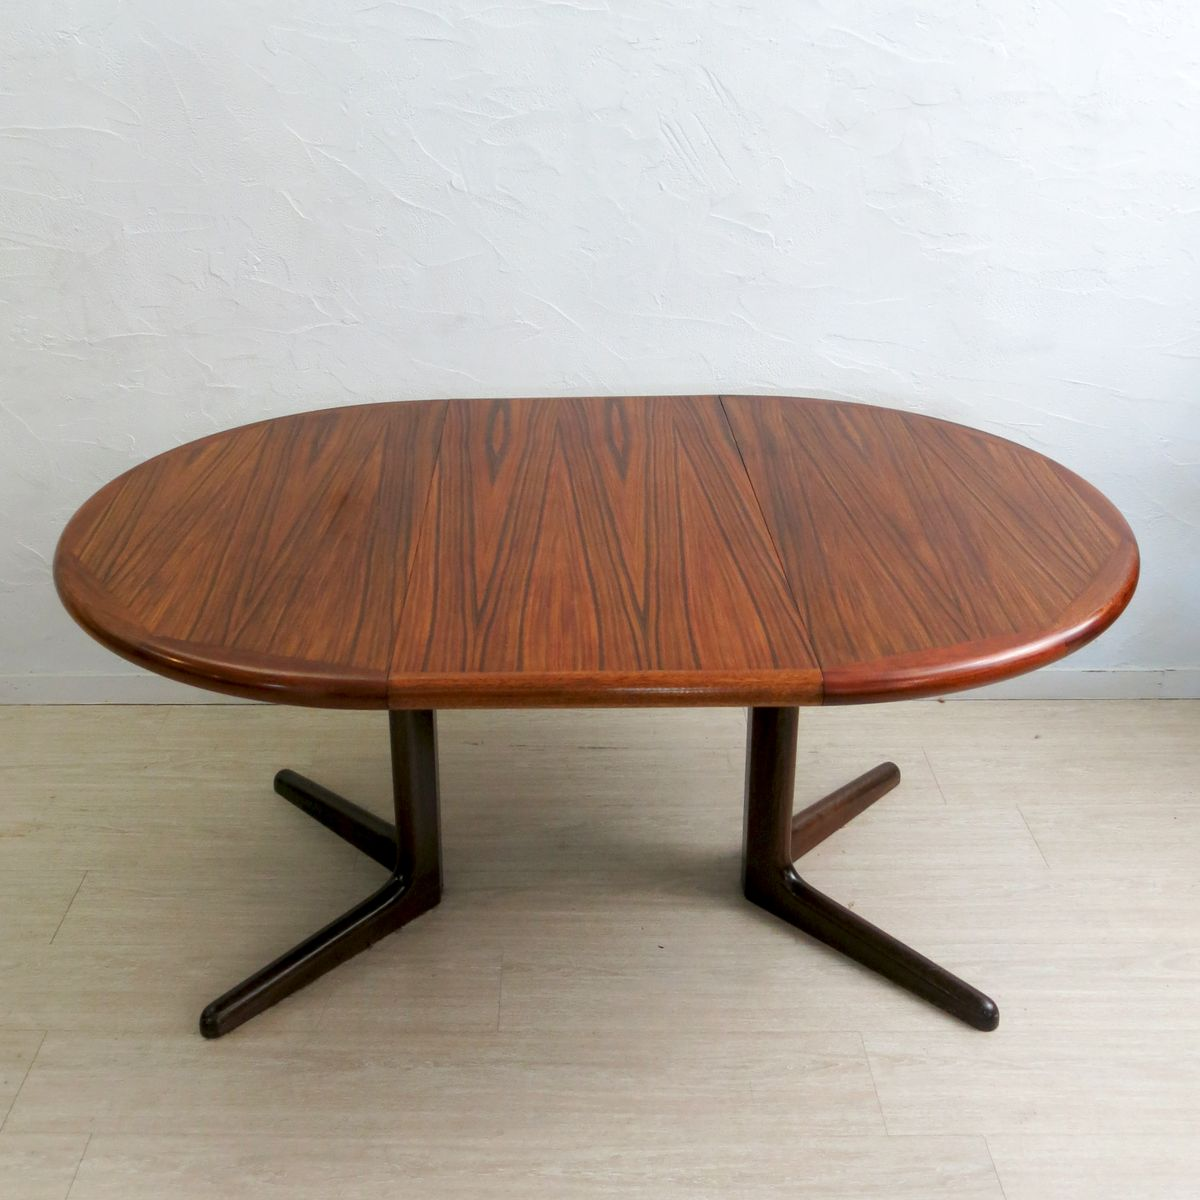 Vintage Extendable Dining Table Vintage Extendable Dining Table By Evalentinsen For Sale At Pamono